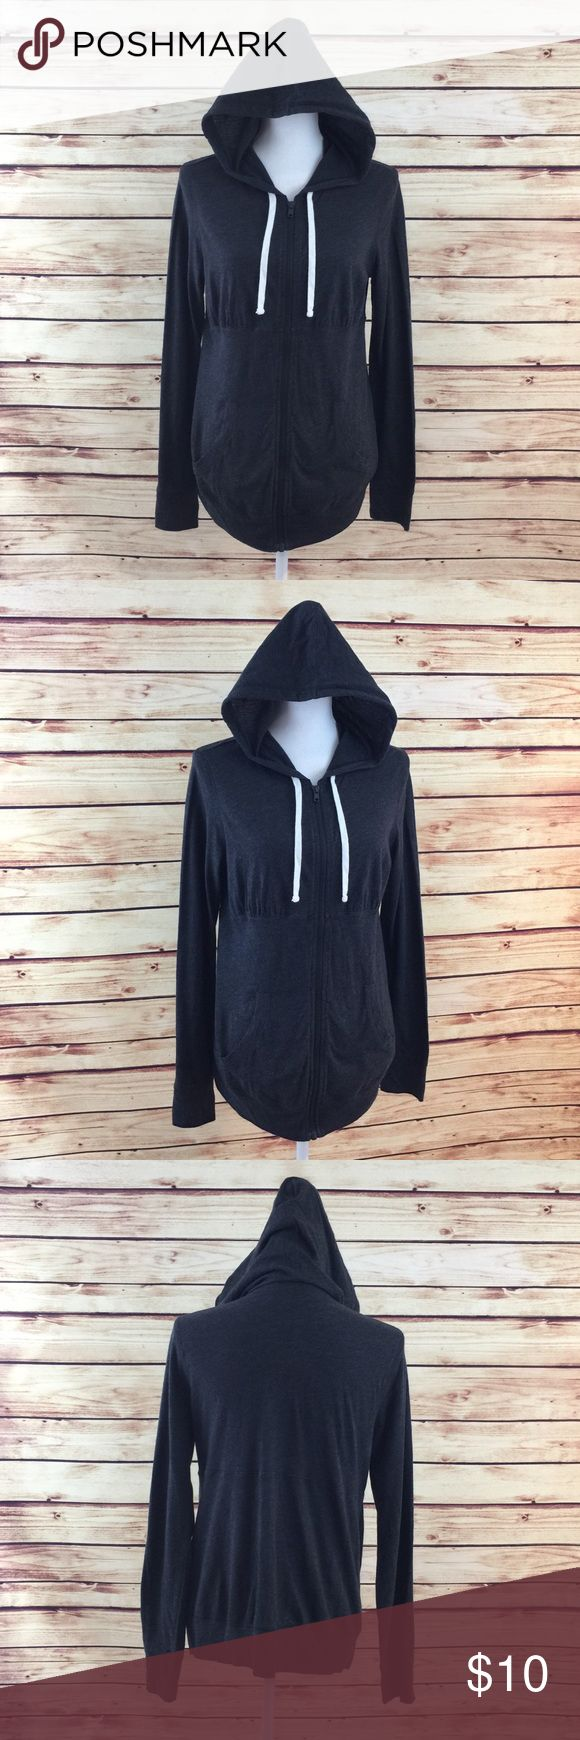 """Make Bundle Offer • Old Navy Maternity Gray Hoodie ▫️Brand: Old Navy Maternity ▫️Size: M ▫️Material: Cotton/Polyester ▫️Flaws: NONE  ▫️Description:  •Full zip front •Long sleeves •Drawstring hood •Empire waist •Tunic length ▫️Measurements Laying Flat: •Waist: 20"""" •Length: 26"""" •Shipping Weight: 9oz  ▪️NO Trade/Hold ▪️Next Day Shipping ▪️Smoke Free/Kitty Friendly Home Old Navy Maternity Tops Sweatshirts & Hoodies"""